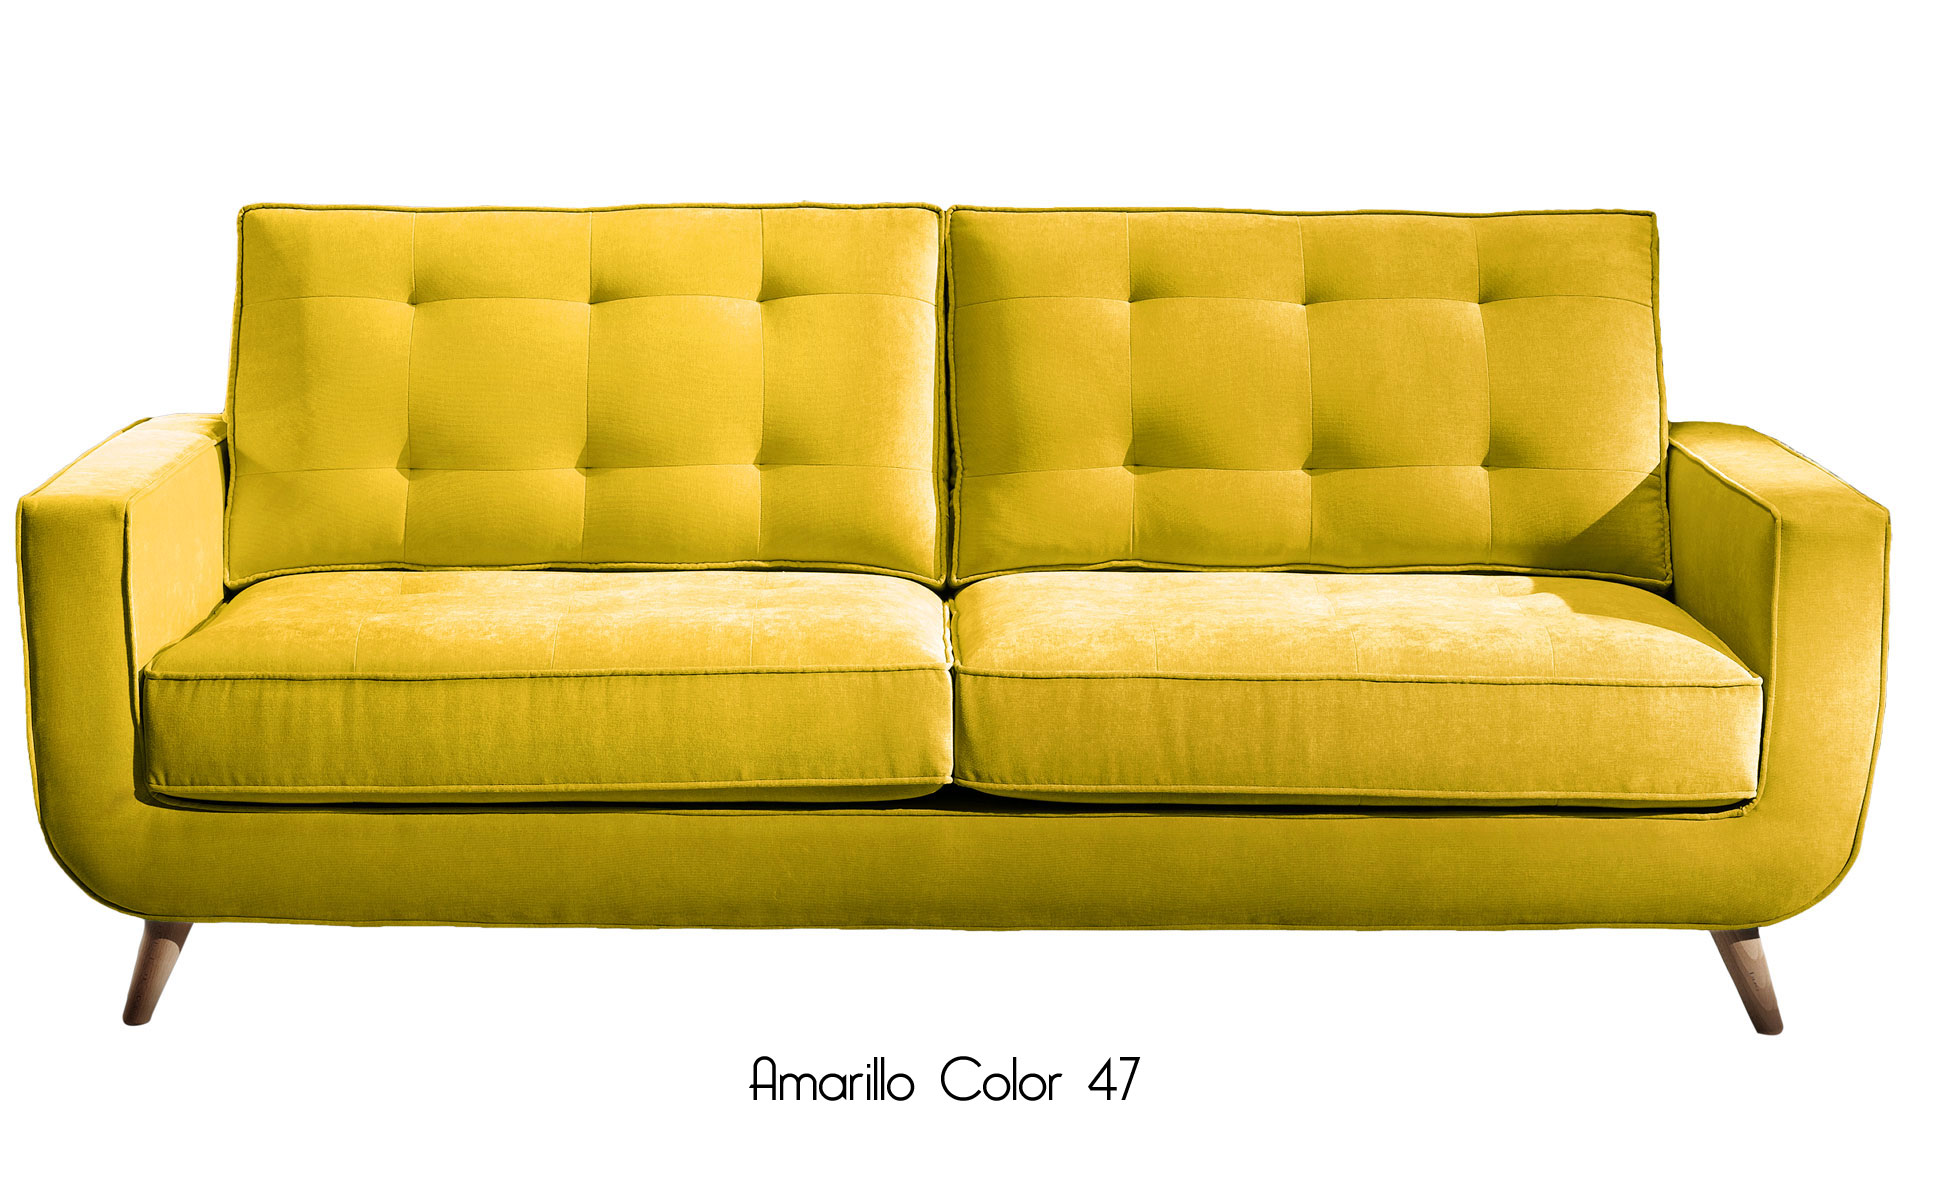 Sof retro little sterling cooper en - Que sofas que muebles ...